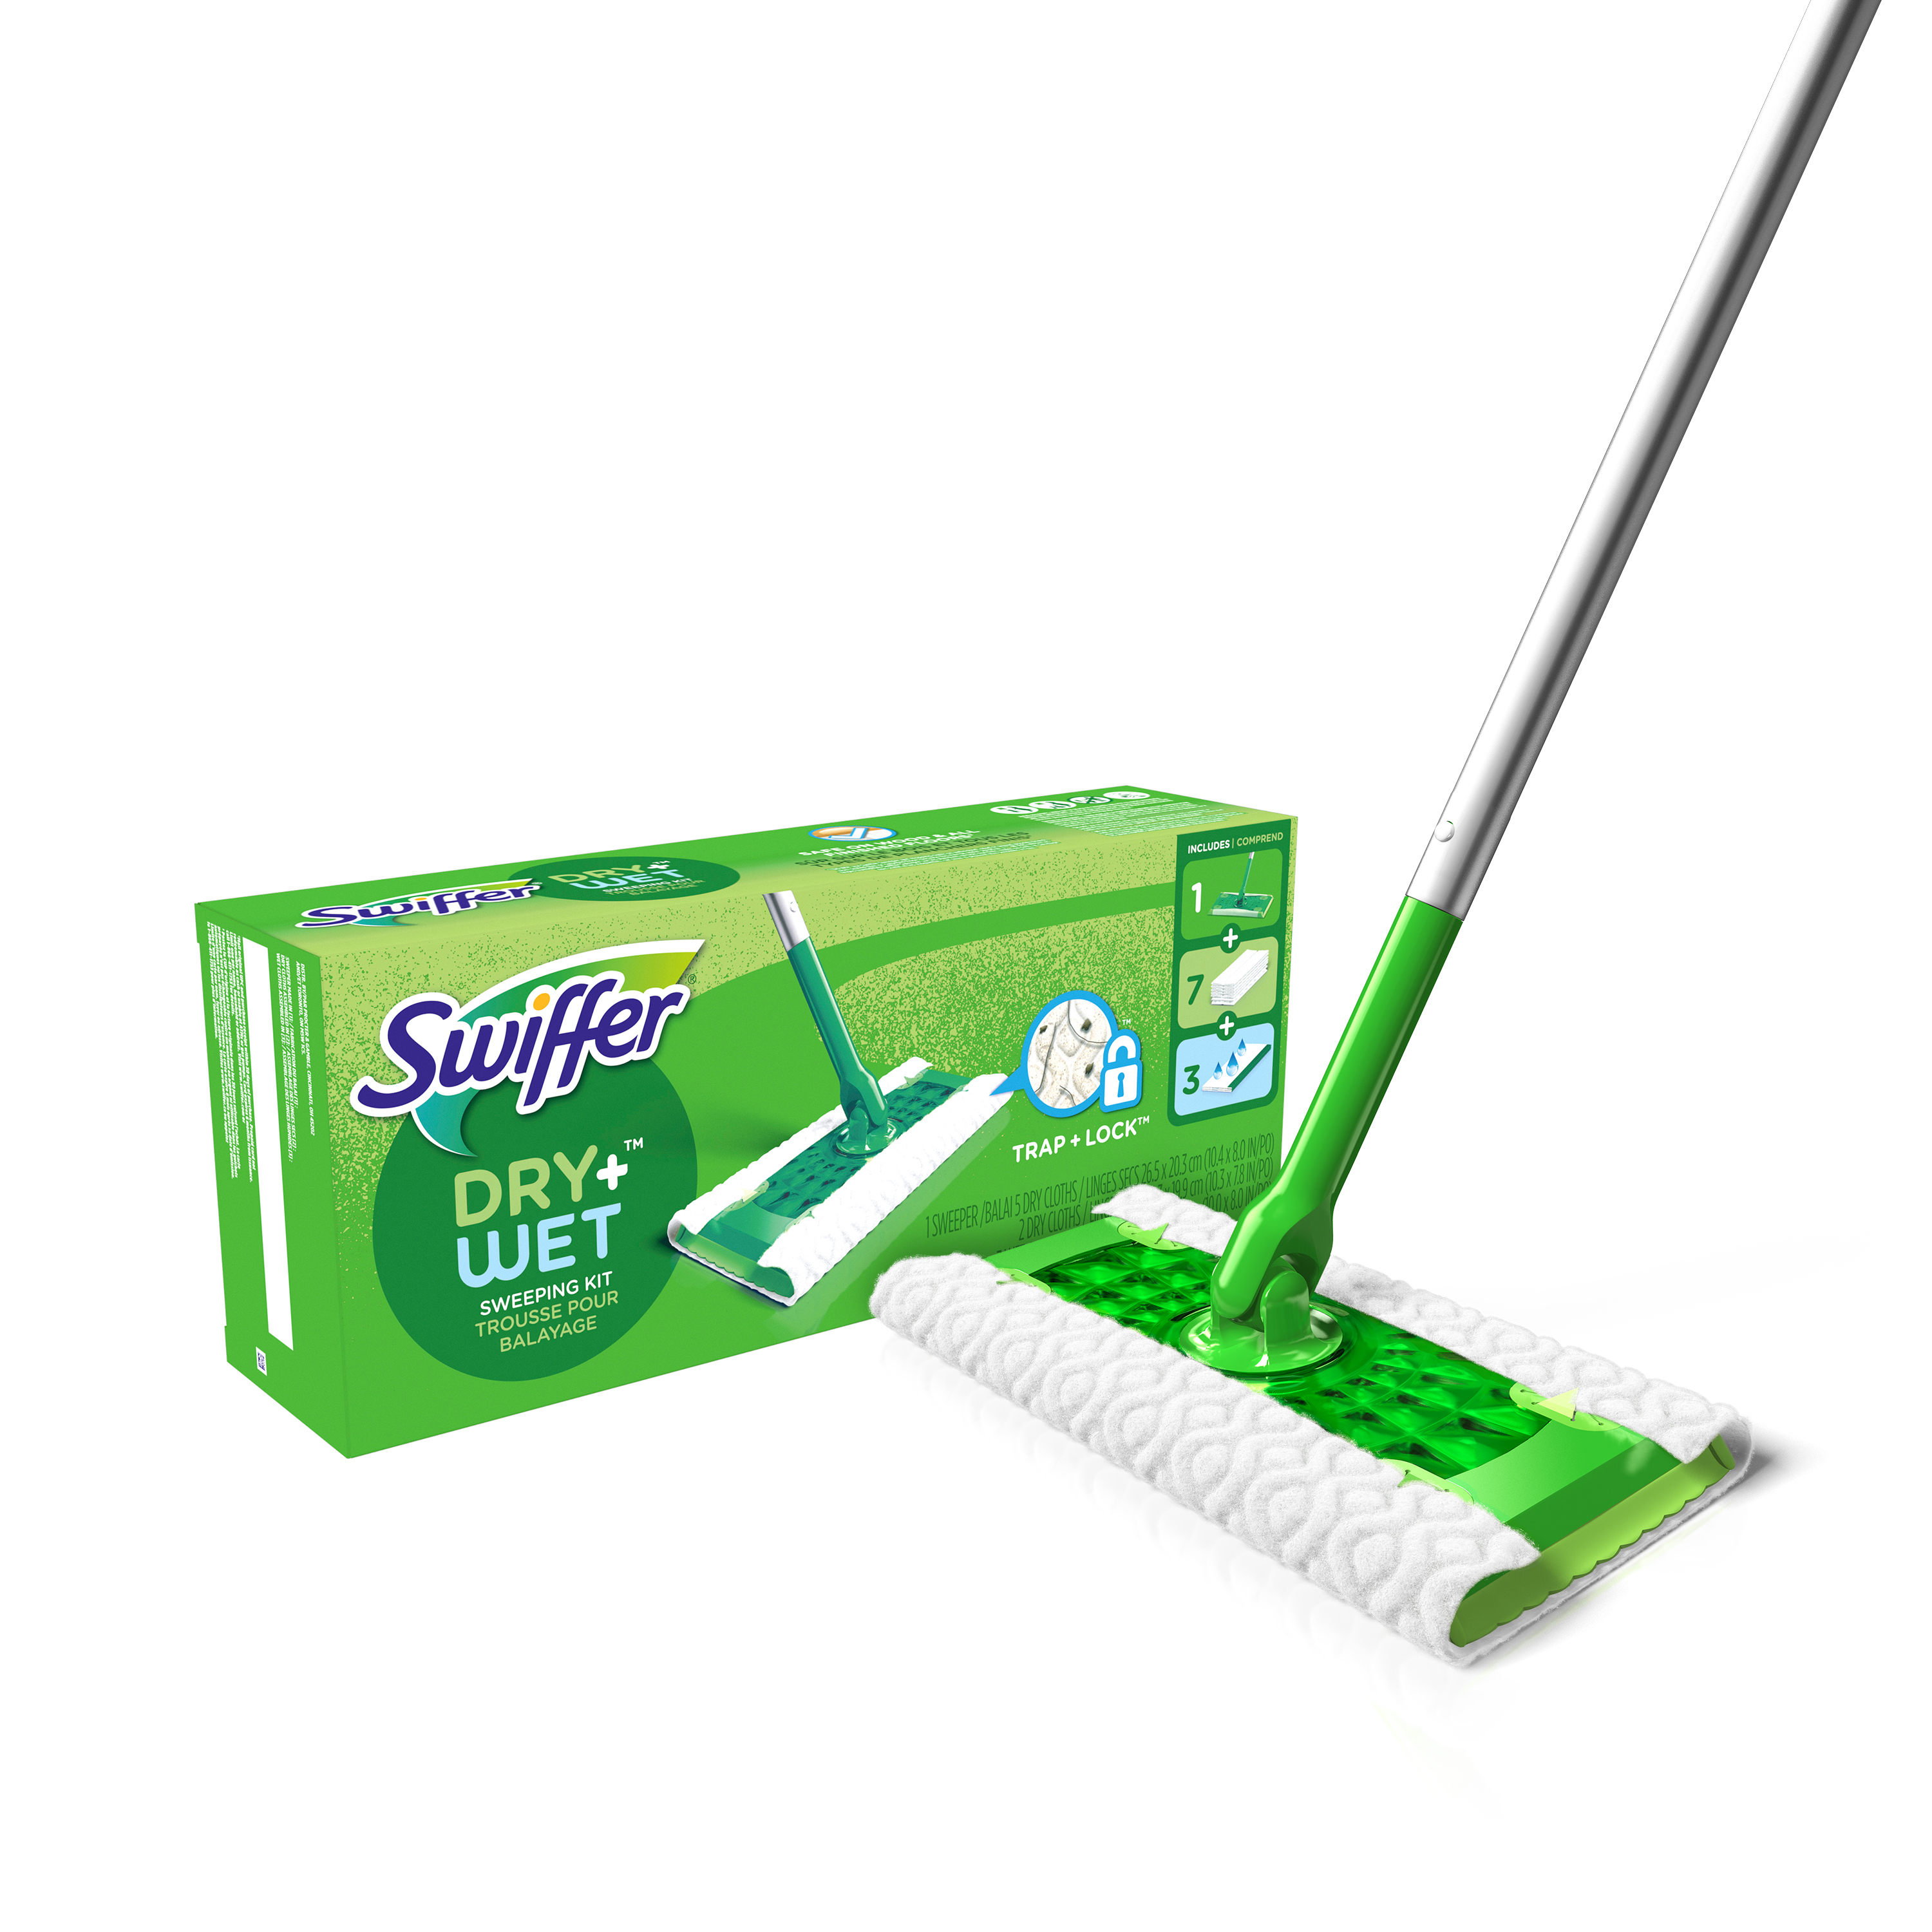 Sweeper Dry Wet All Purpose Floor Mopping And Cleaning